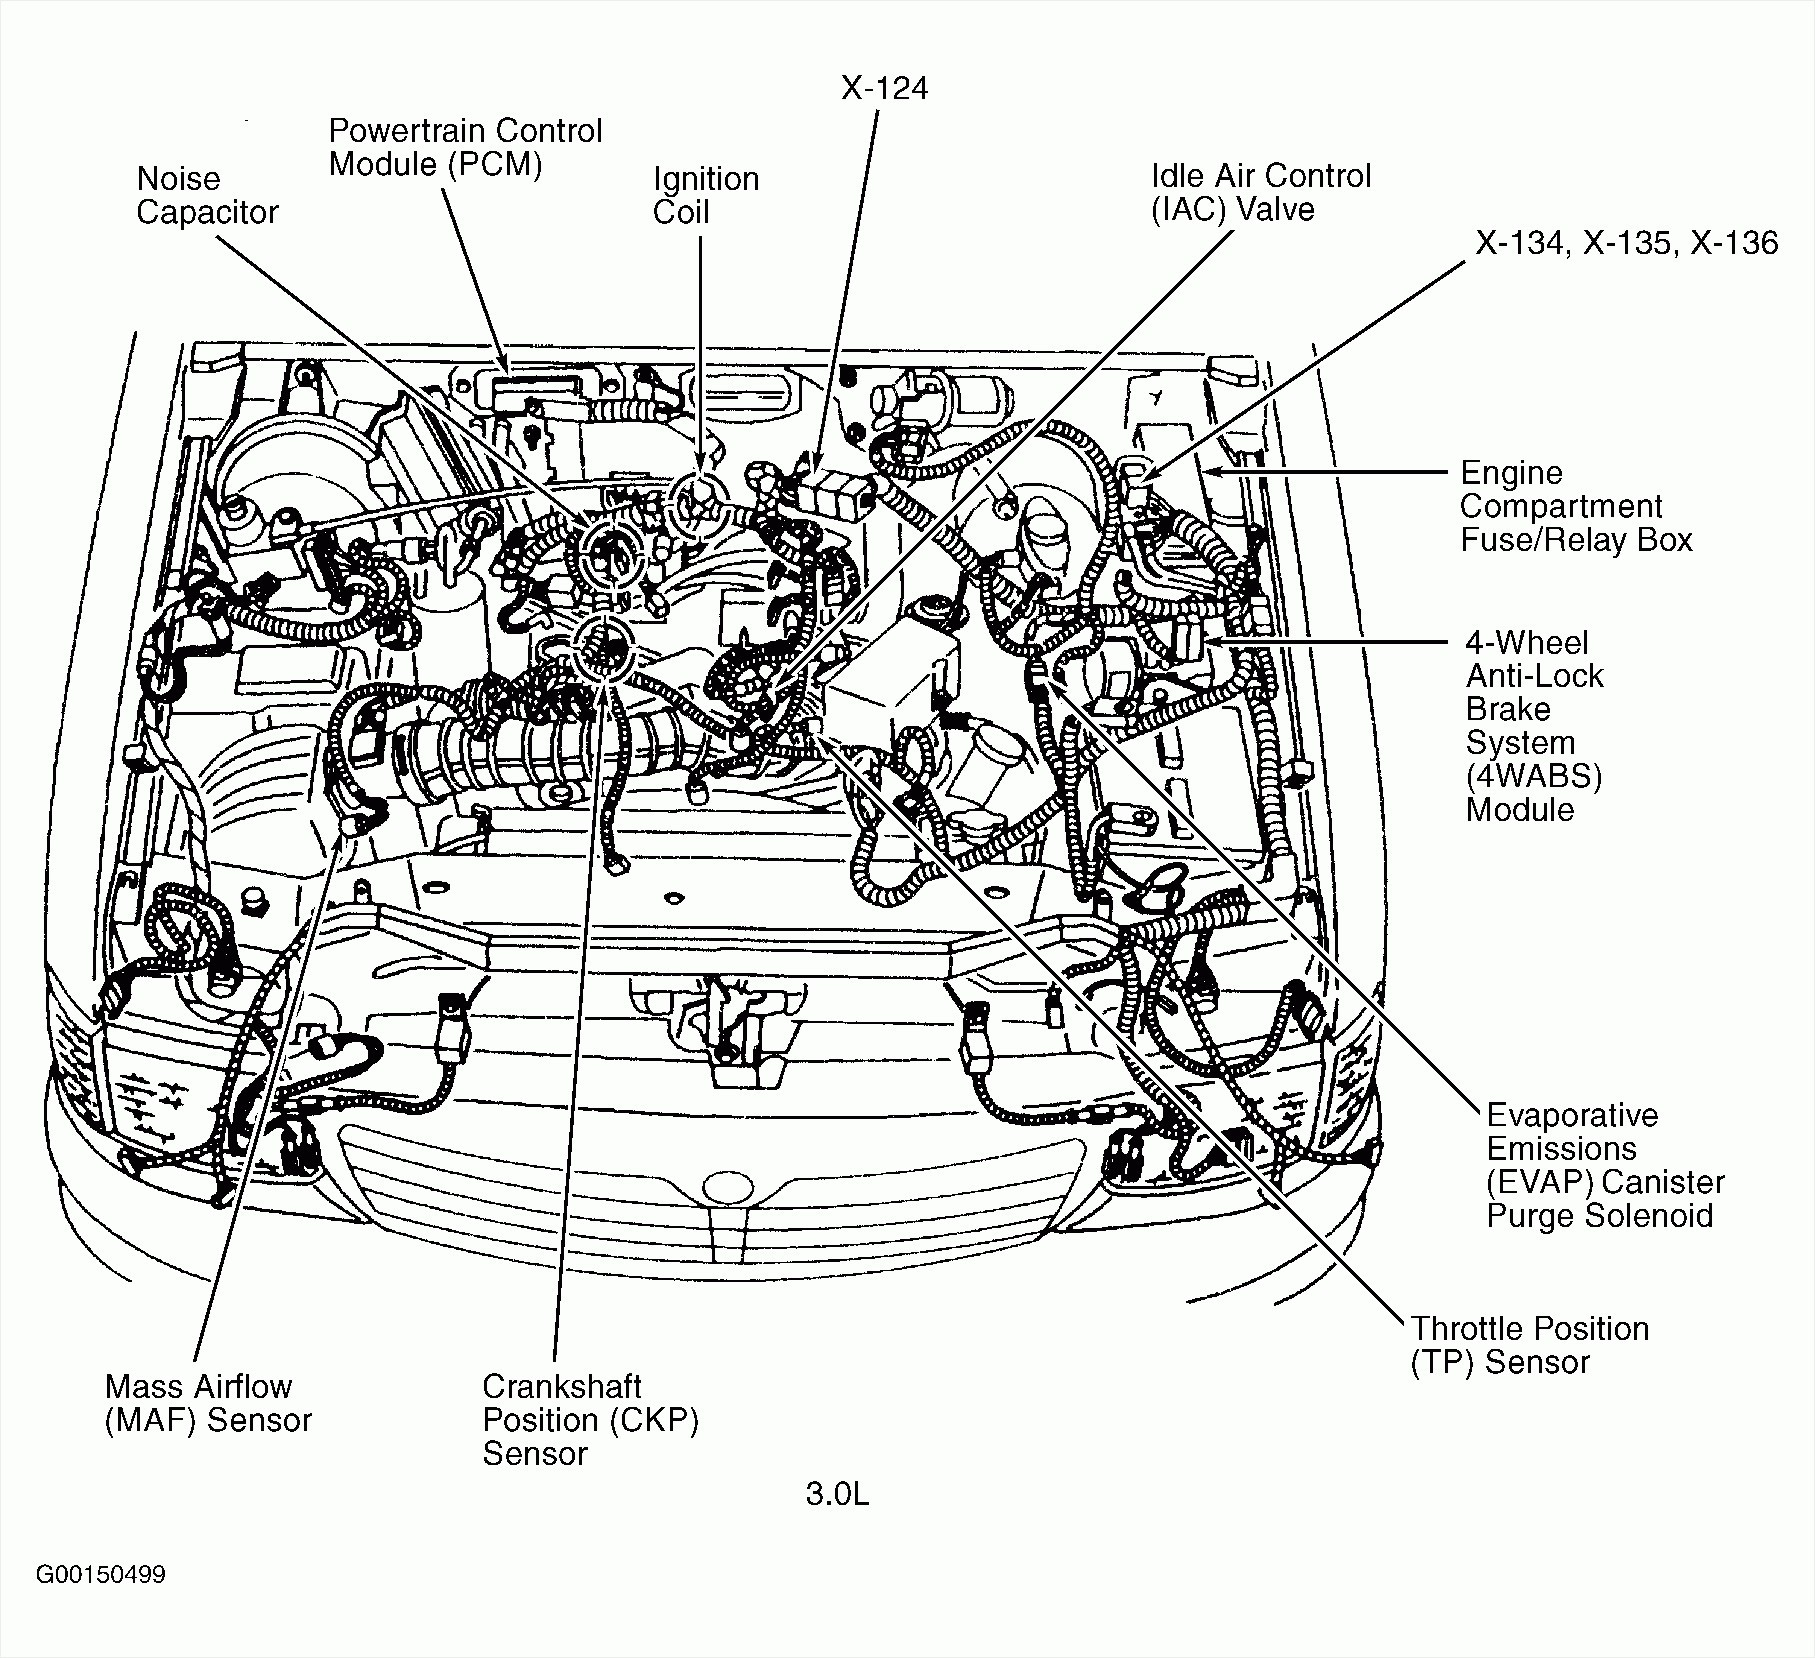 hight resolution of bmw serie 3 cooling system diagram wiring diagram files air conditioning diagram moreover bmw e46 led tail lights likewise bmw